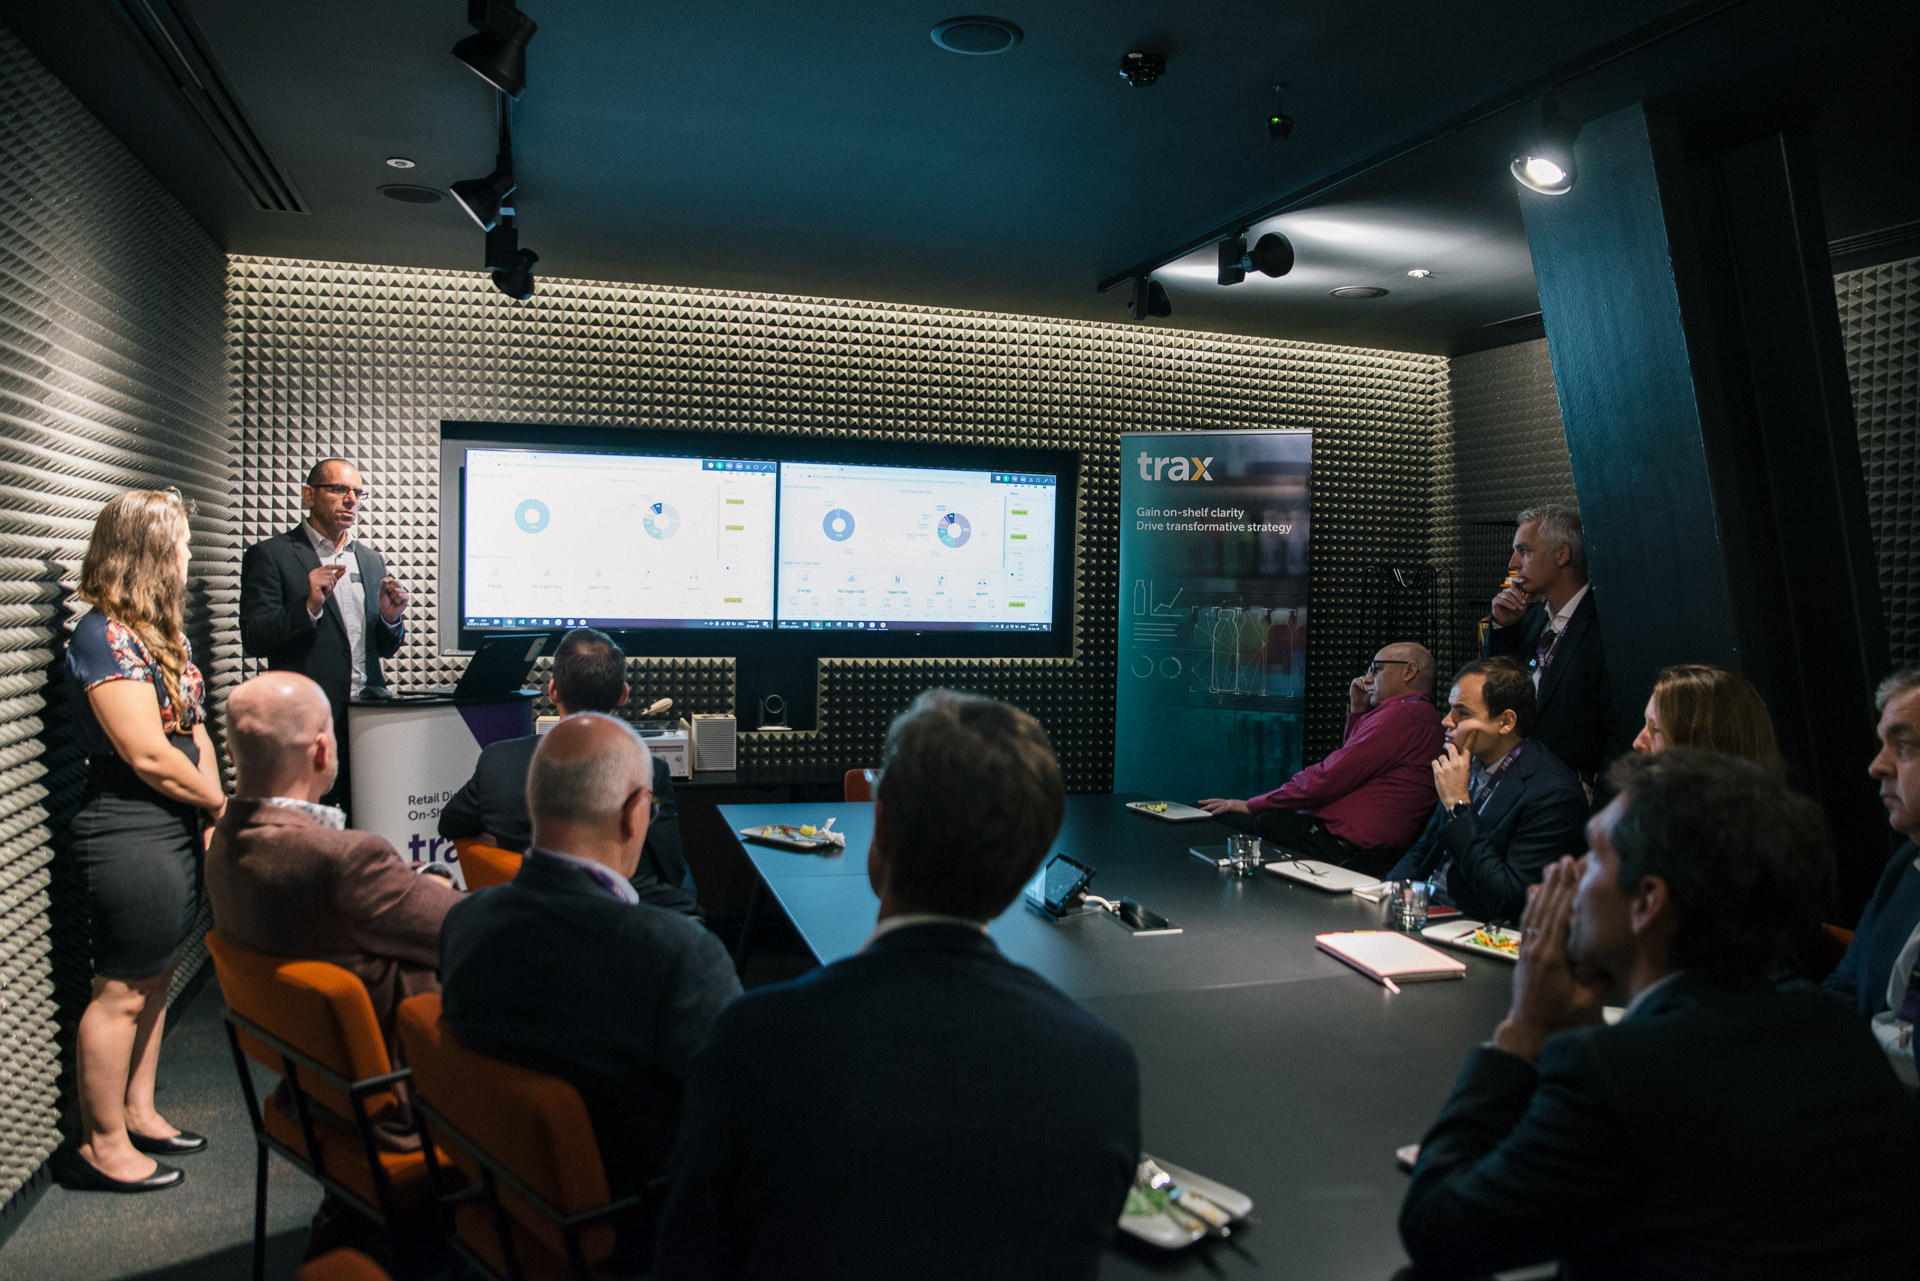 trax innovation day london 2019 presentation